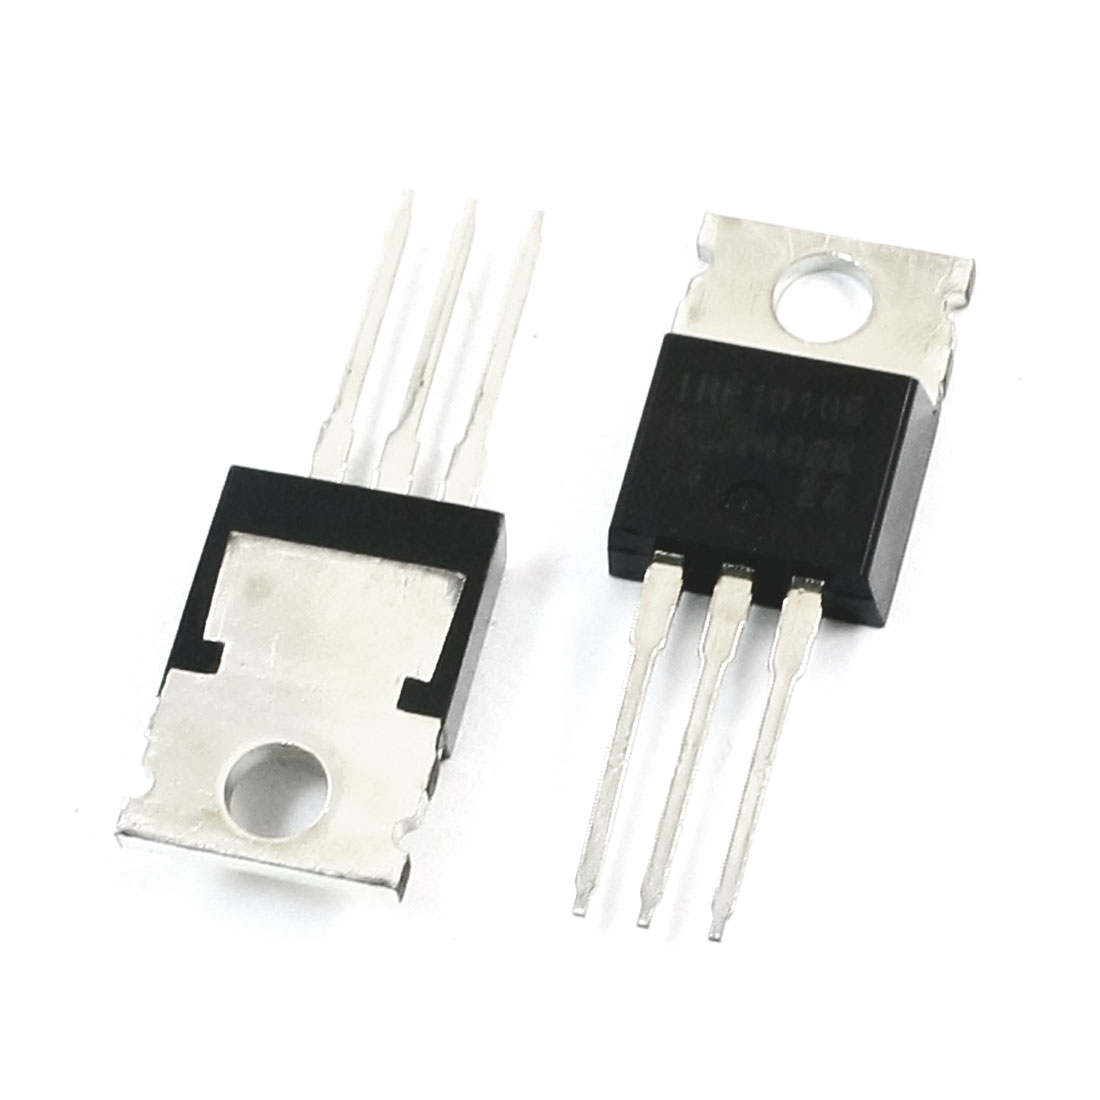 2Pcs IRF1010E 60V 84A N Channel MOS Power Field Effect Transistor